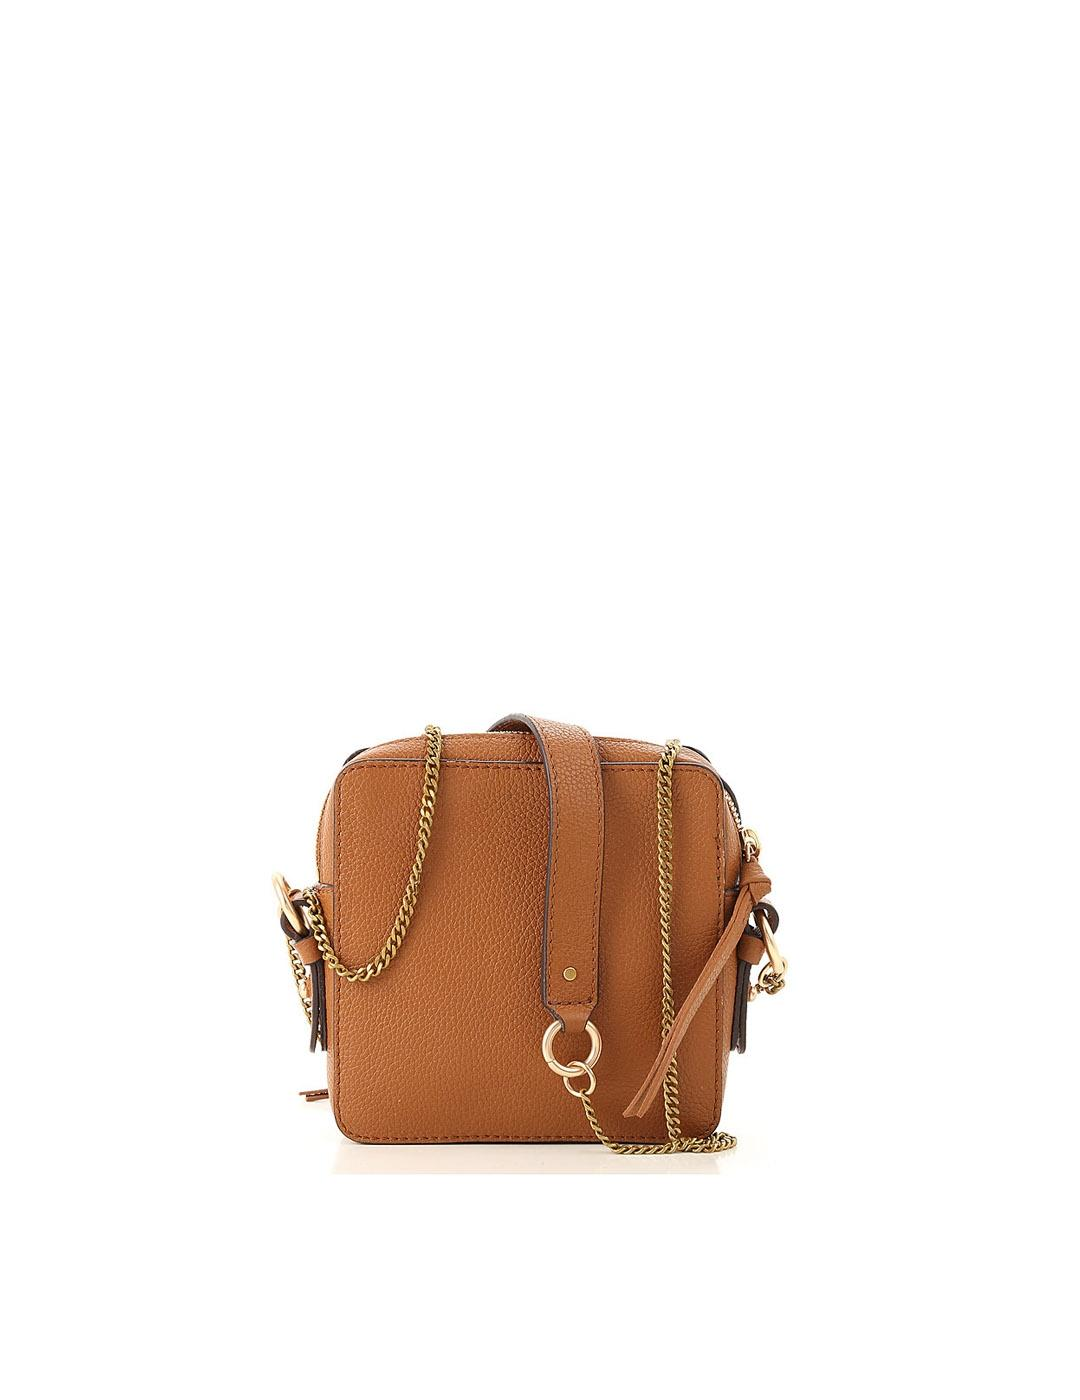 Bolso See by Chloé marró caramel Joan Sbc Shoulderbag